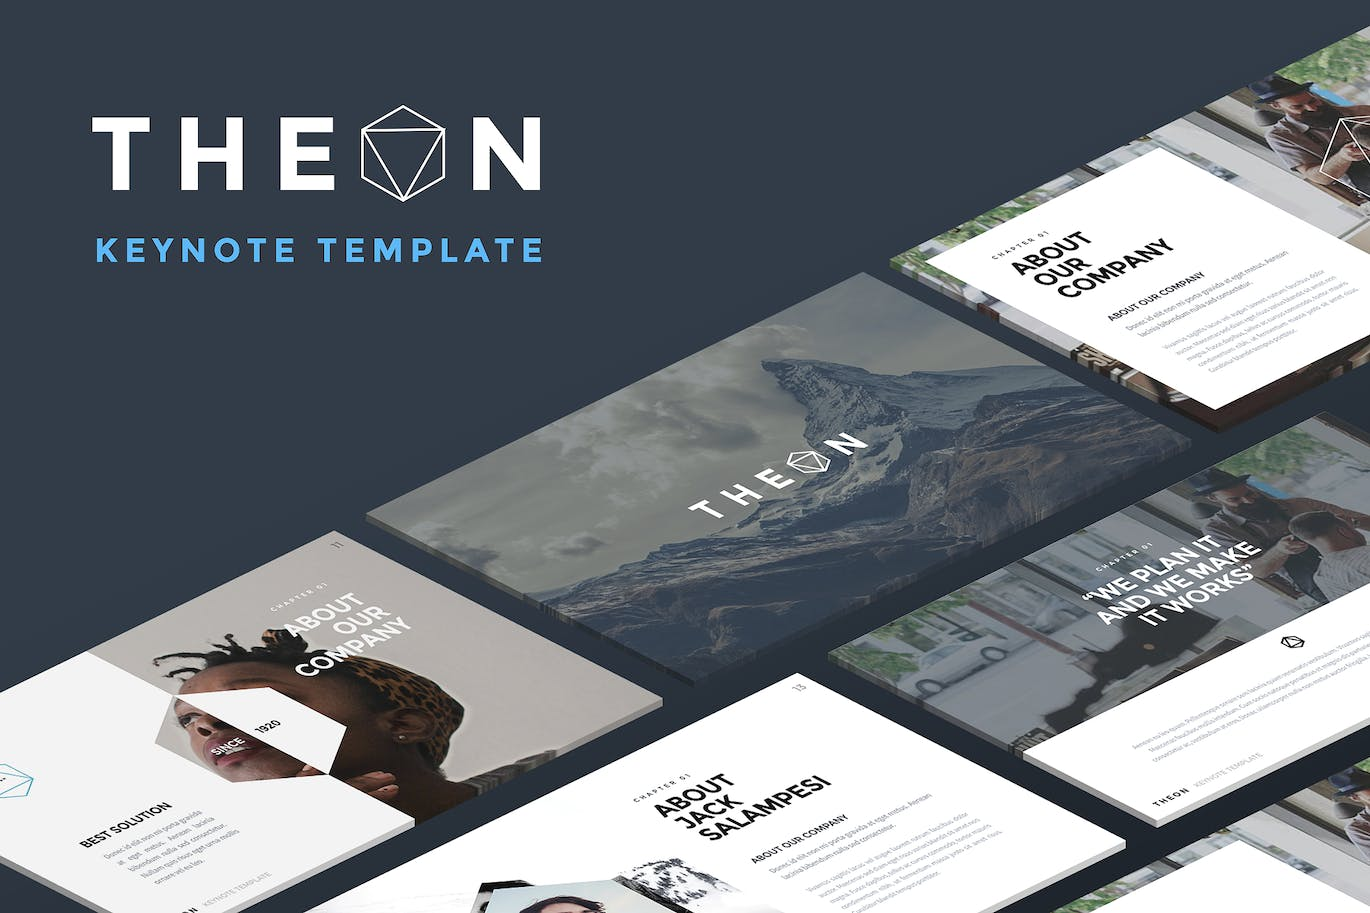 Theon Keynote Template By Slidehack On Envato Elements